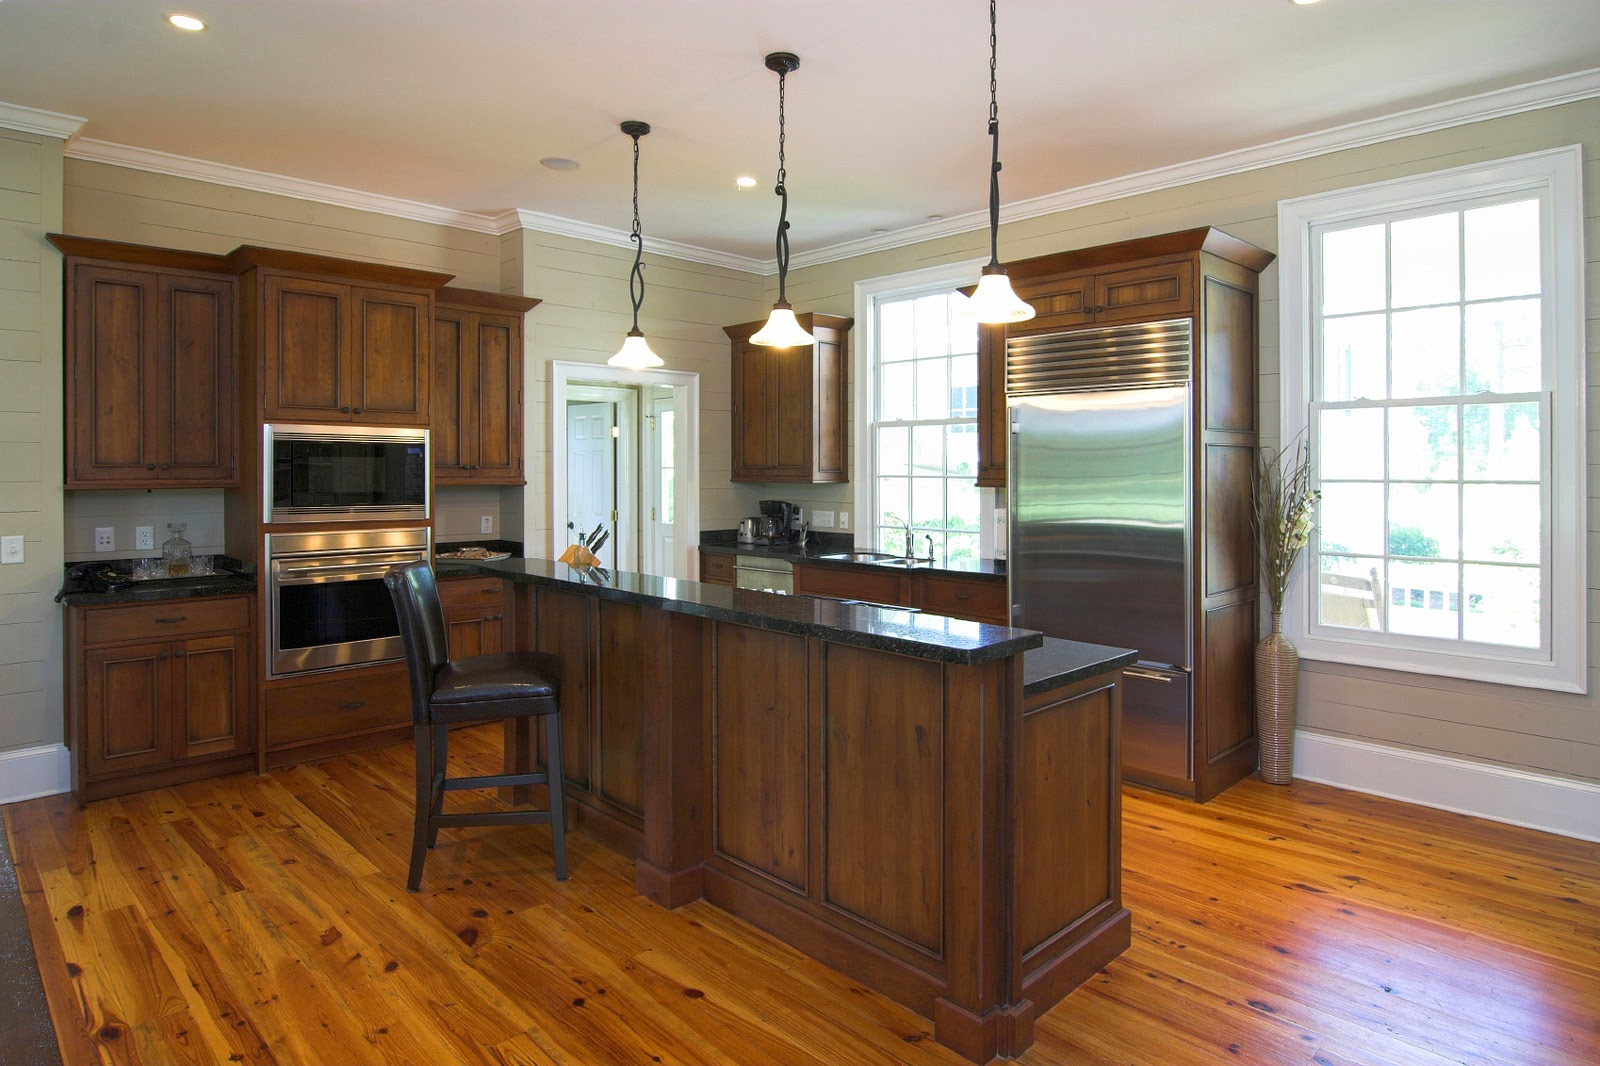 can you put hardwood floors in a kitchen most in-demand home design